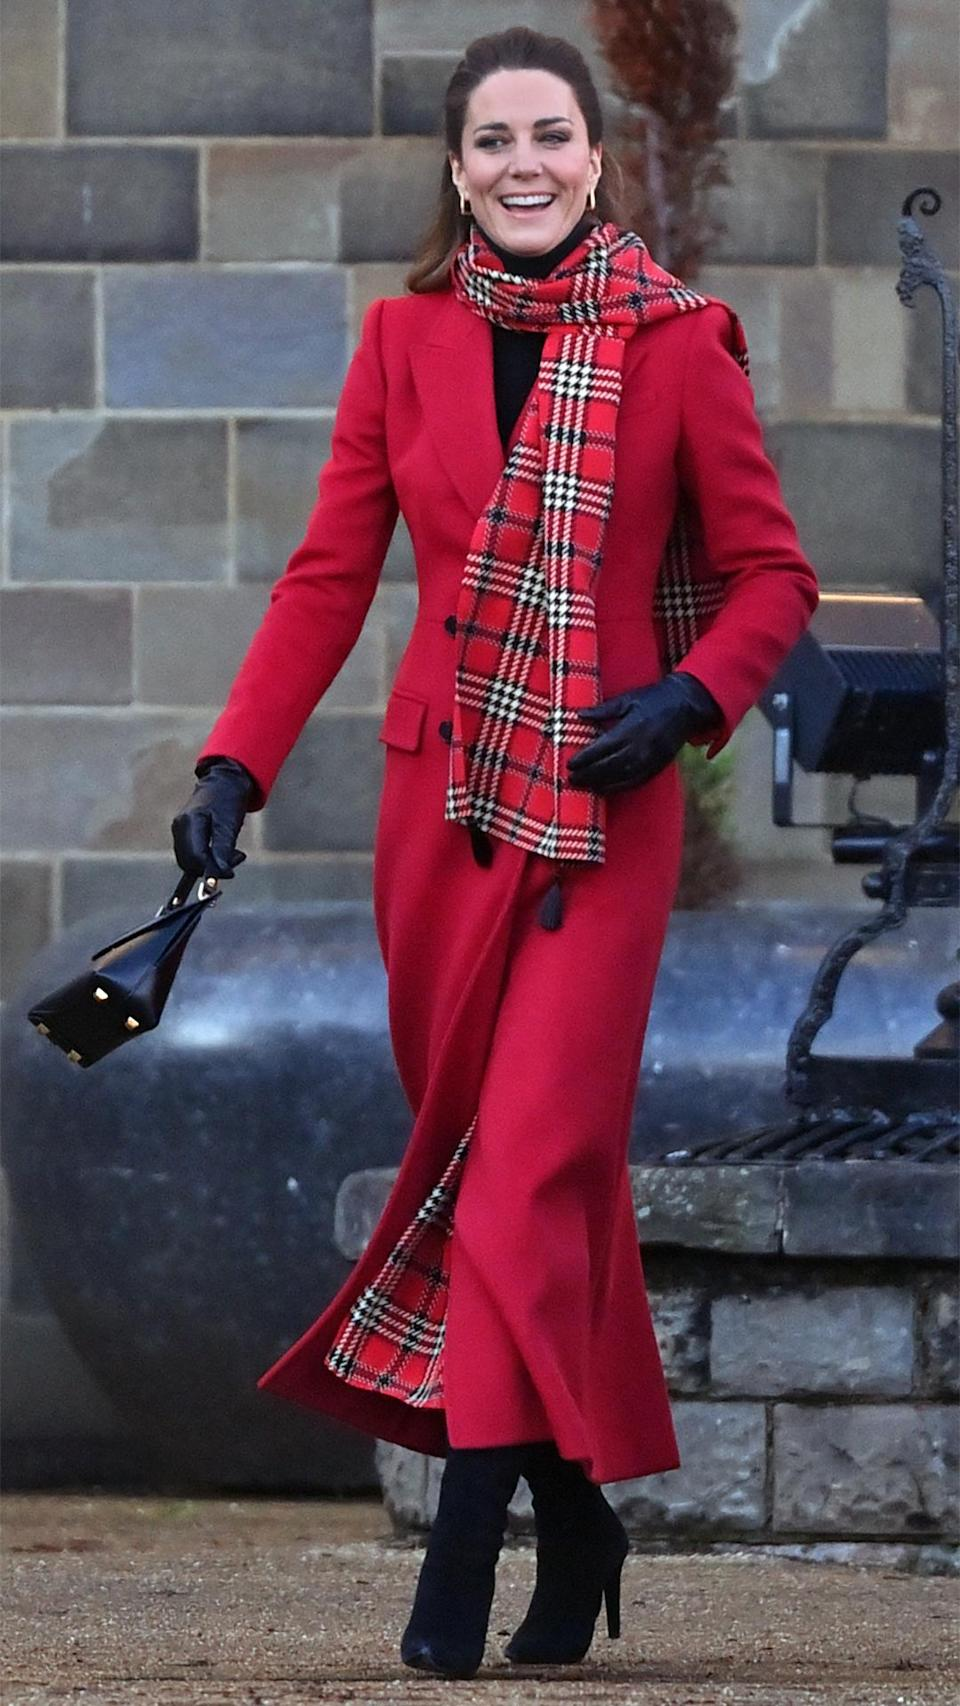 <p>Kate rocked a patterned scarf that complemented her red coat during her December 2020 royal train tour stop in Cardiff, Wales.</p>